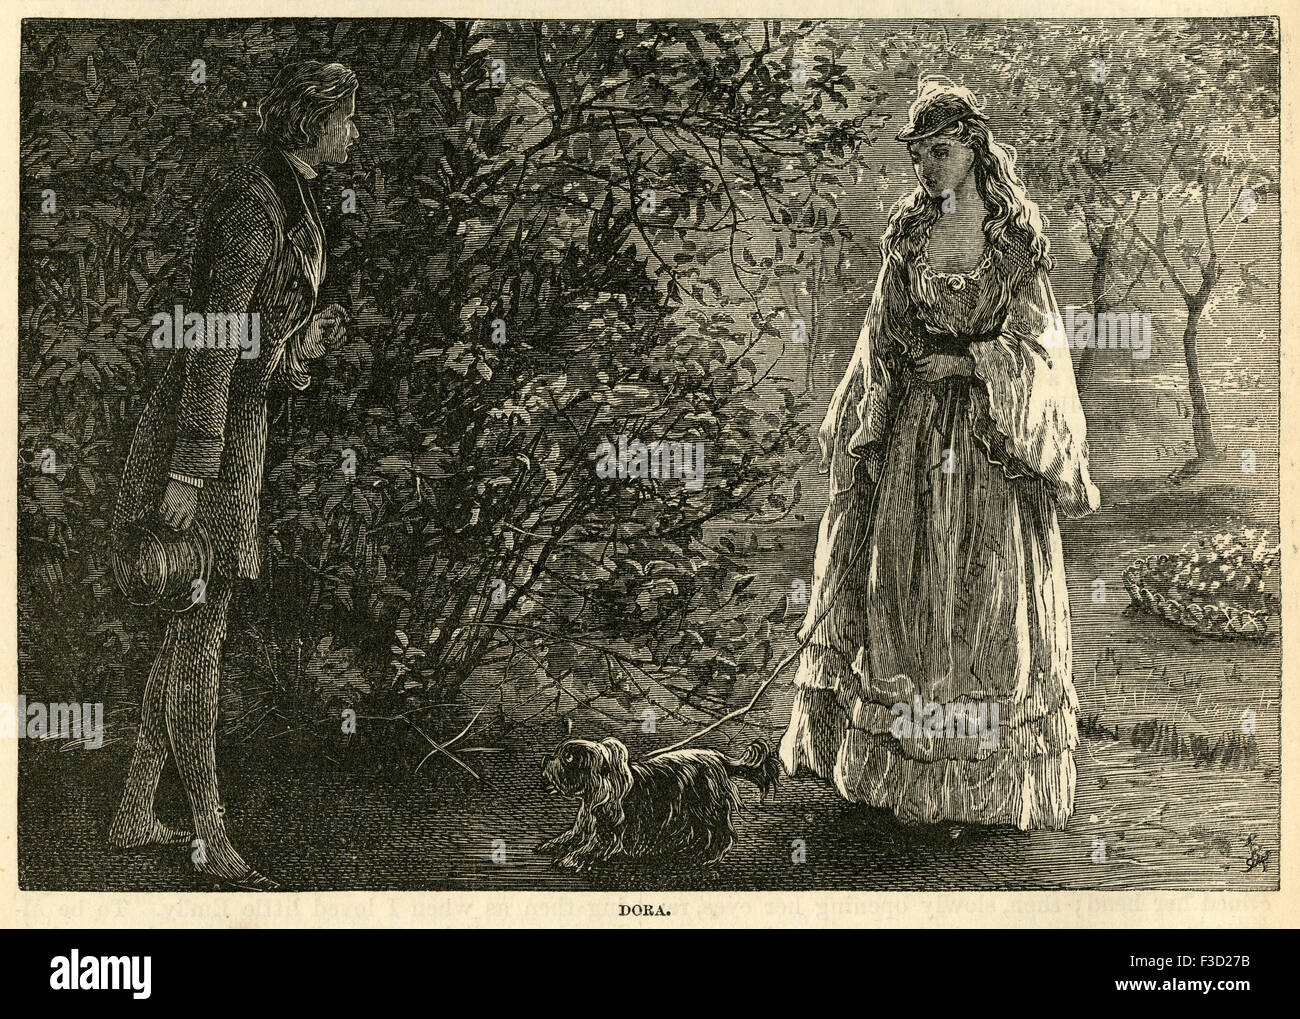 Illustration from 1872 edition of Charles Dickens's David Copperfield. Meeting Dora Spenlow and her dog Jip. - Stock Image